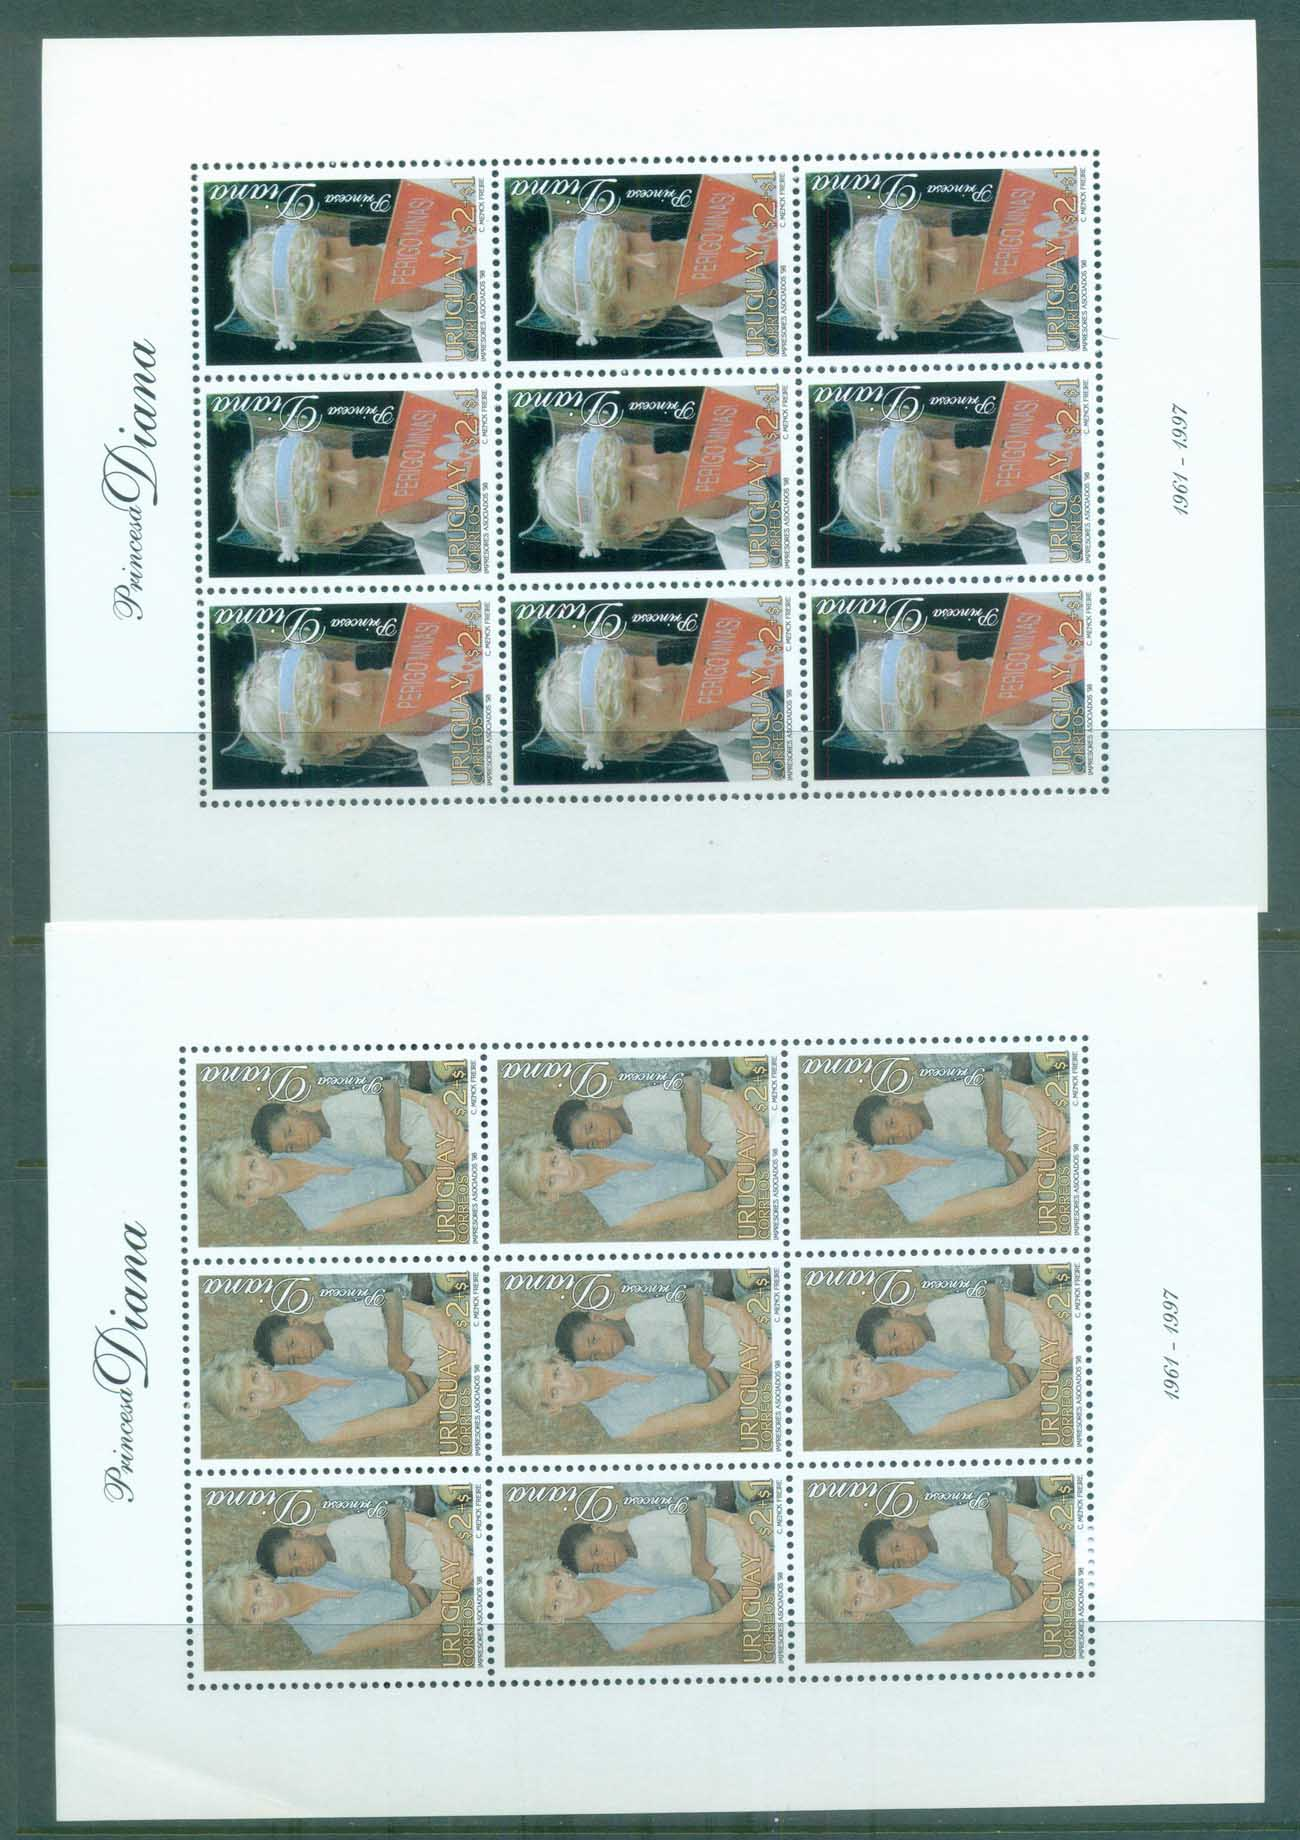 Uruguay 1998 Princess Diana In Memoriam 2xMS MUH lot82049